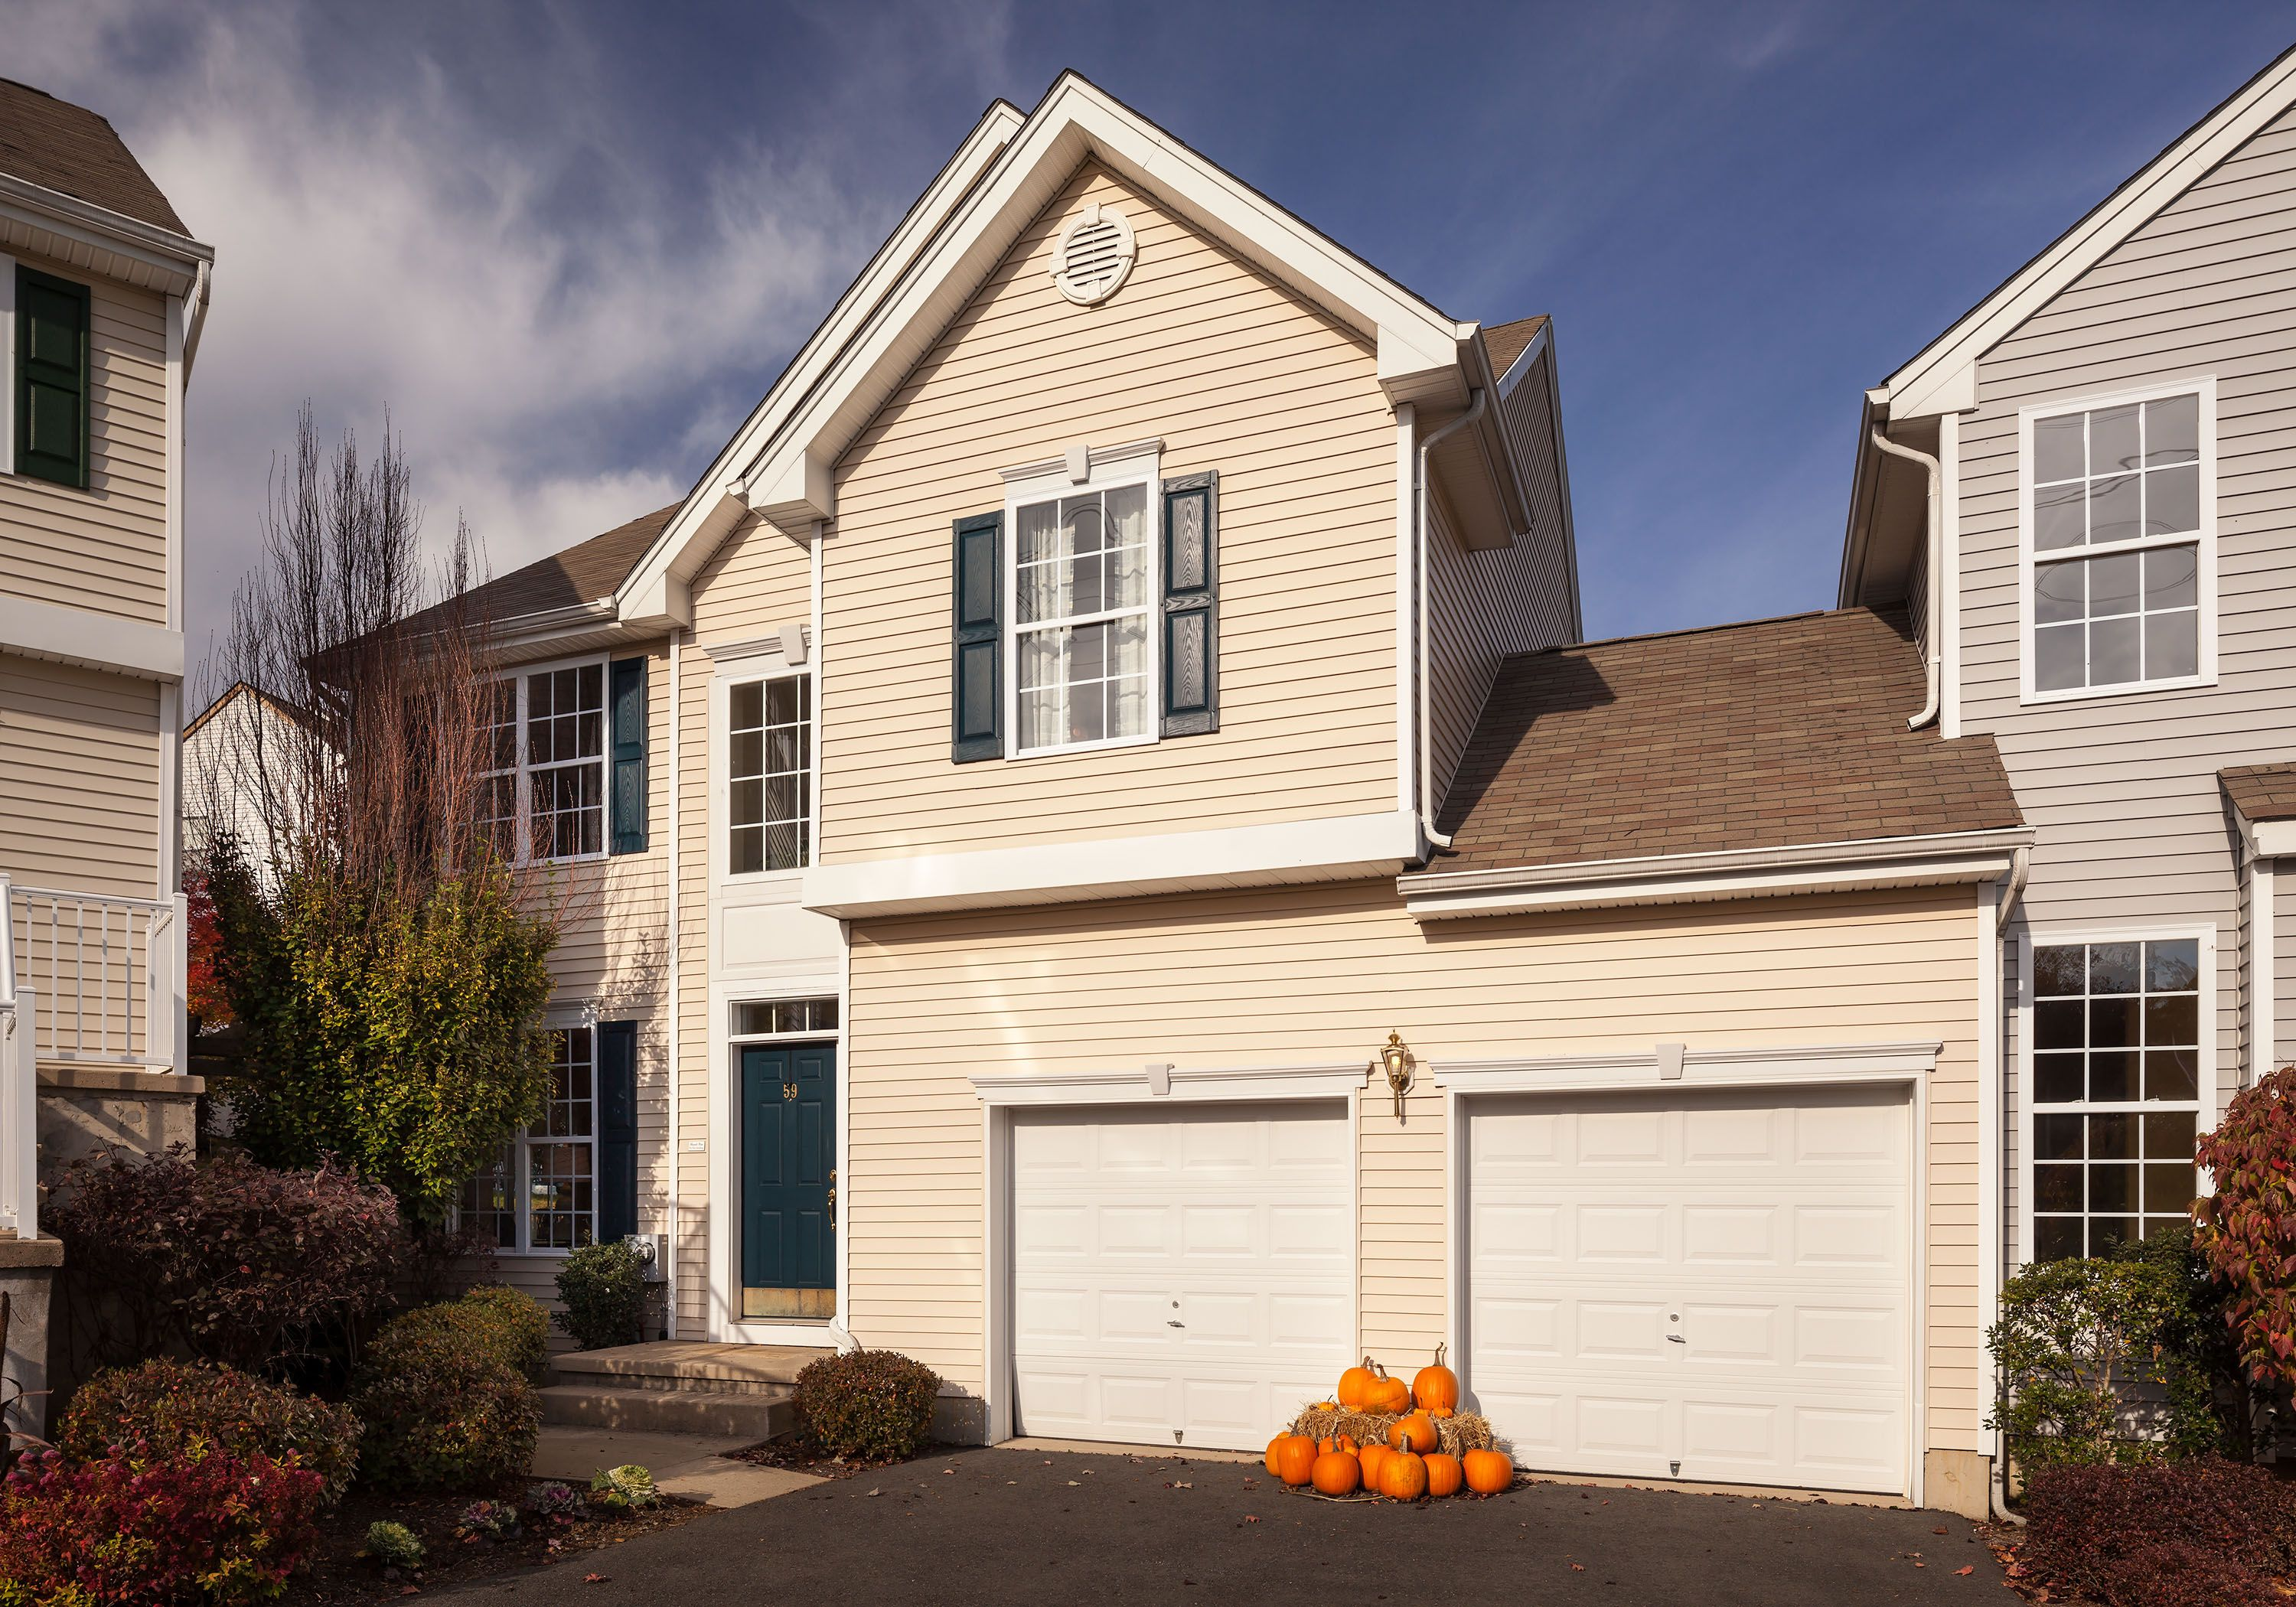 Loving this fall curb appeal! #DRHorton #home